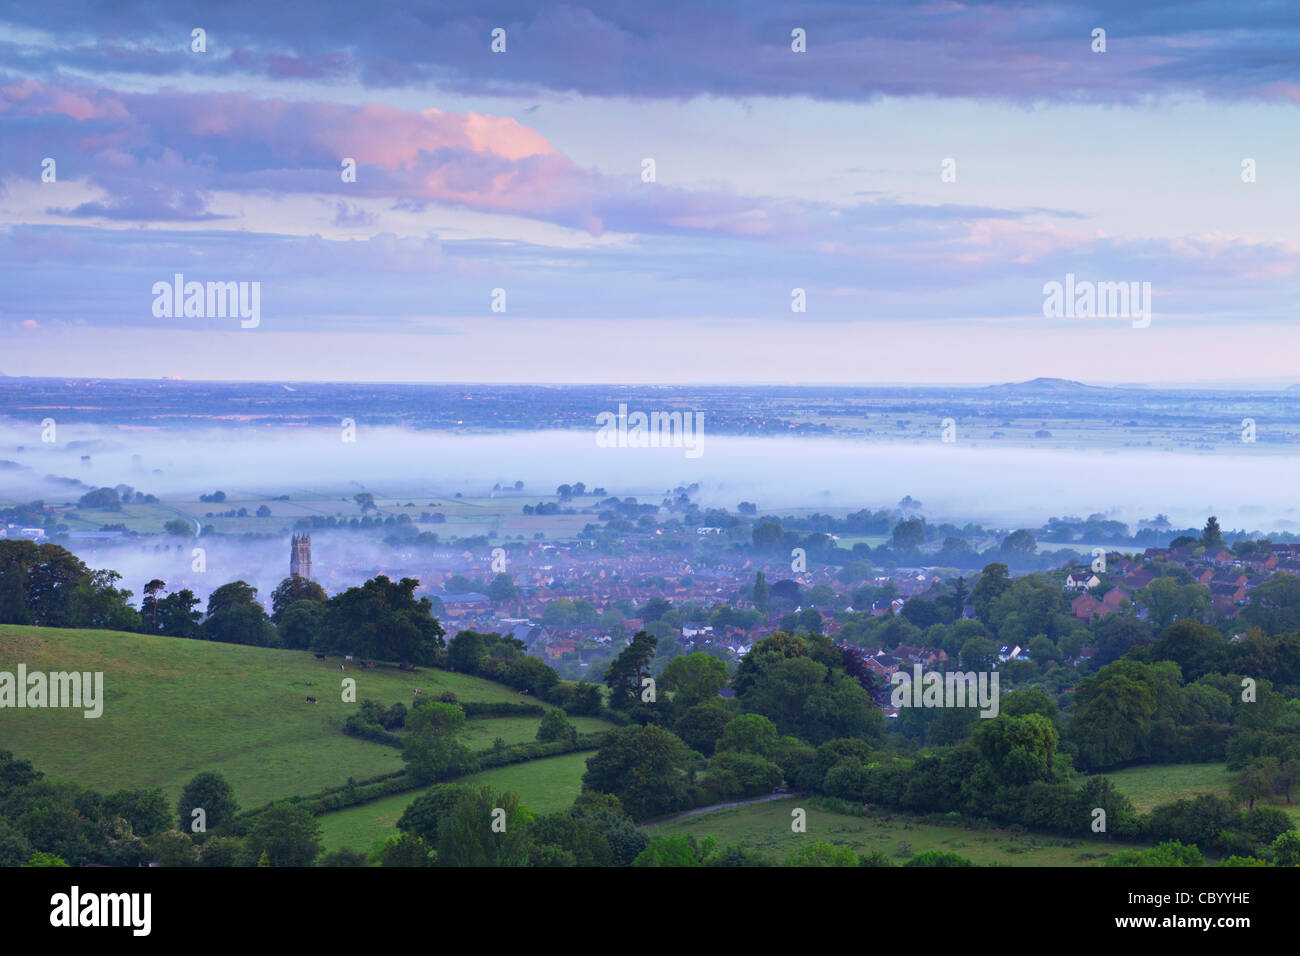 The town of Glastonbury and the Somerset Levels, shrouded in mist, from Glastonbury Tor, in pre-dawn light. - Stock Image